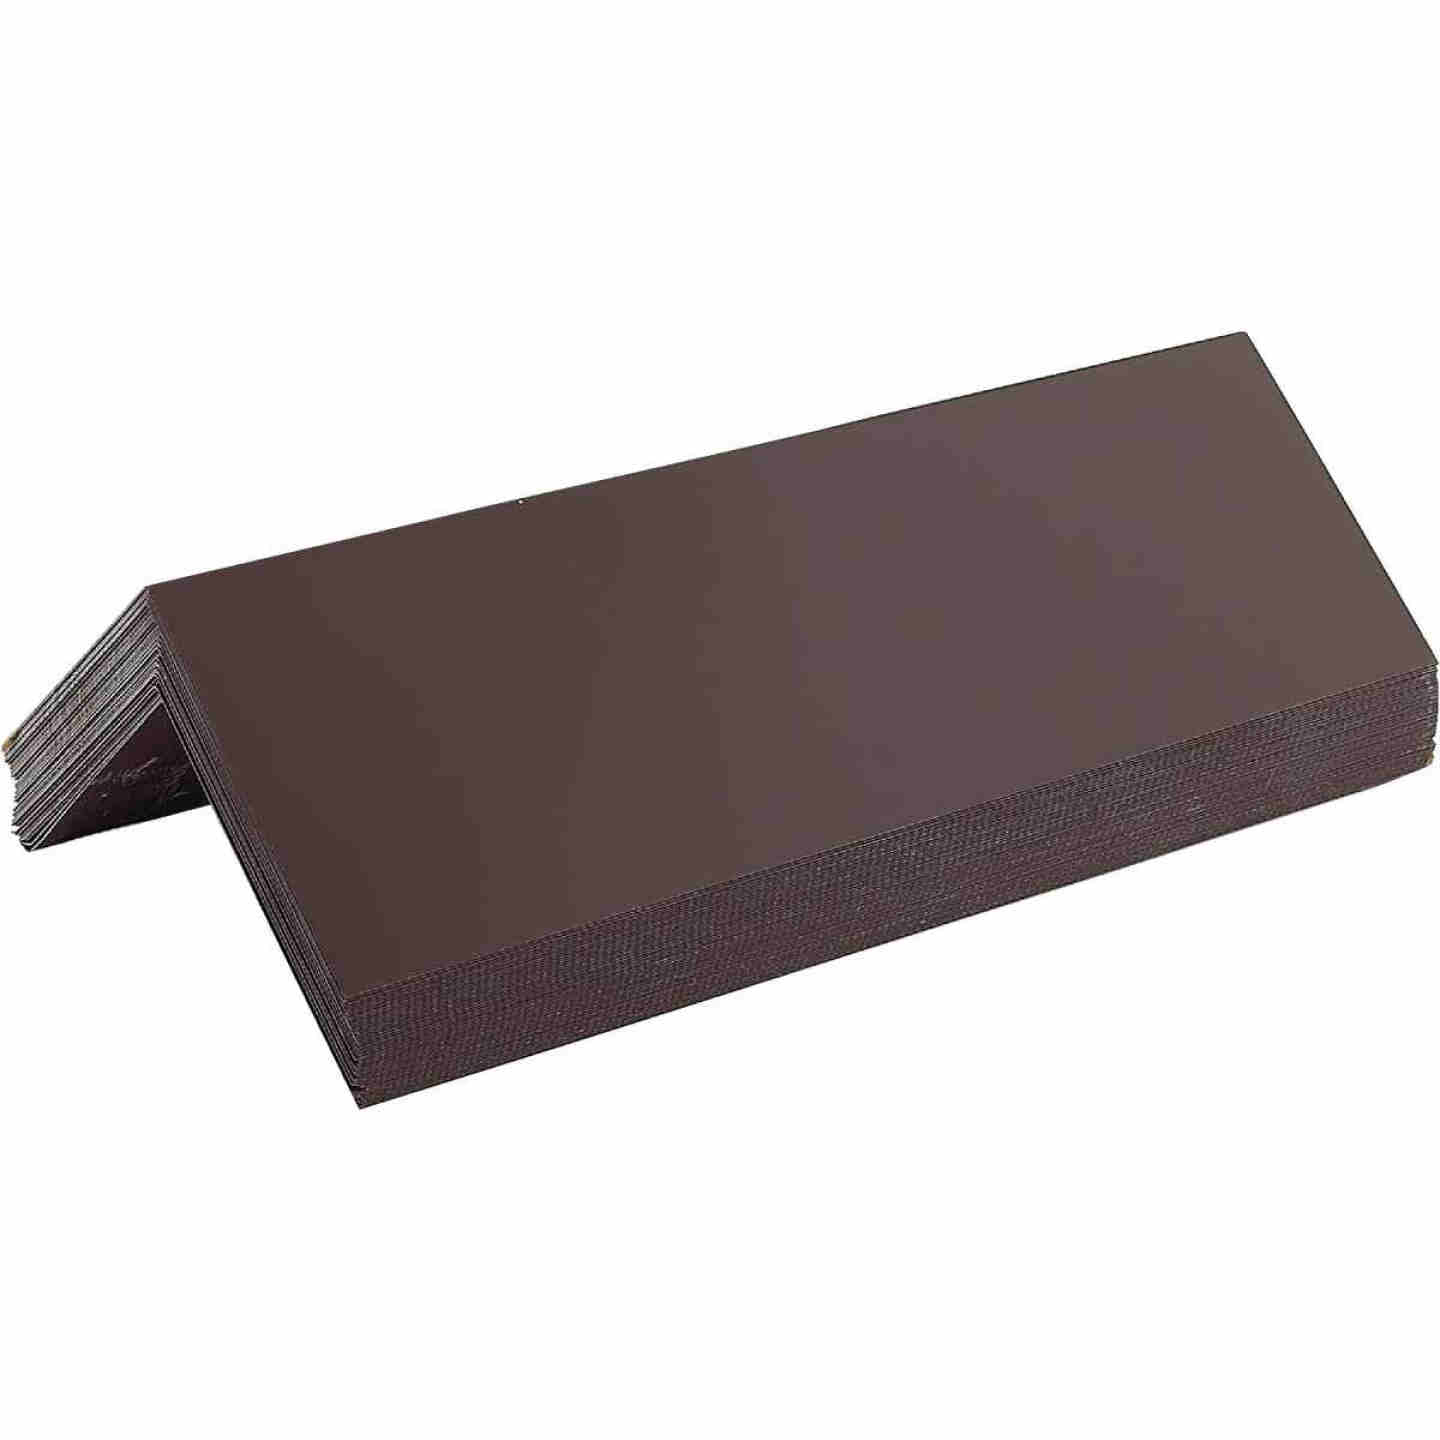 NorWesco 4 In. x 12 In. Galvanized Pre-Bent Step Flashing Shingle Image 1